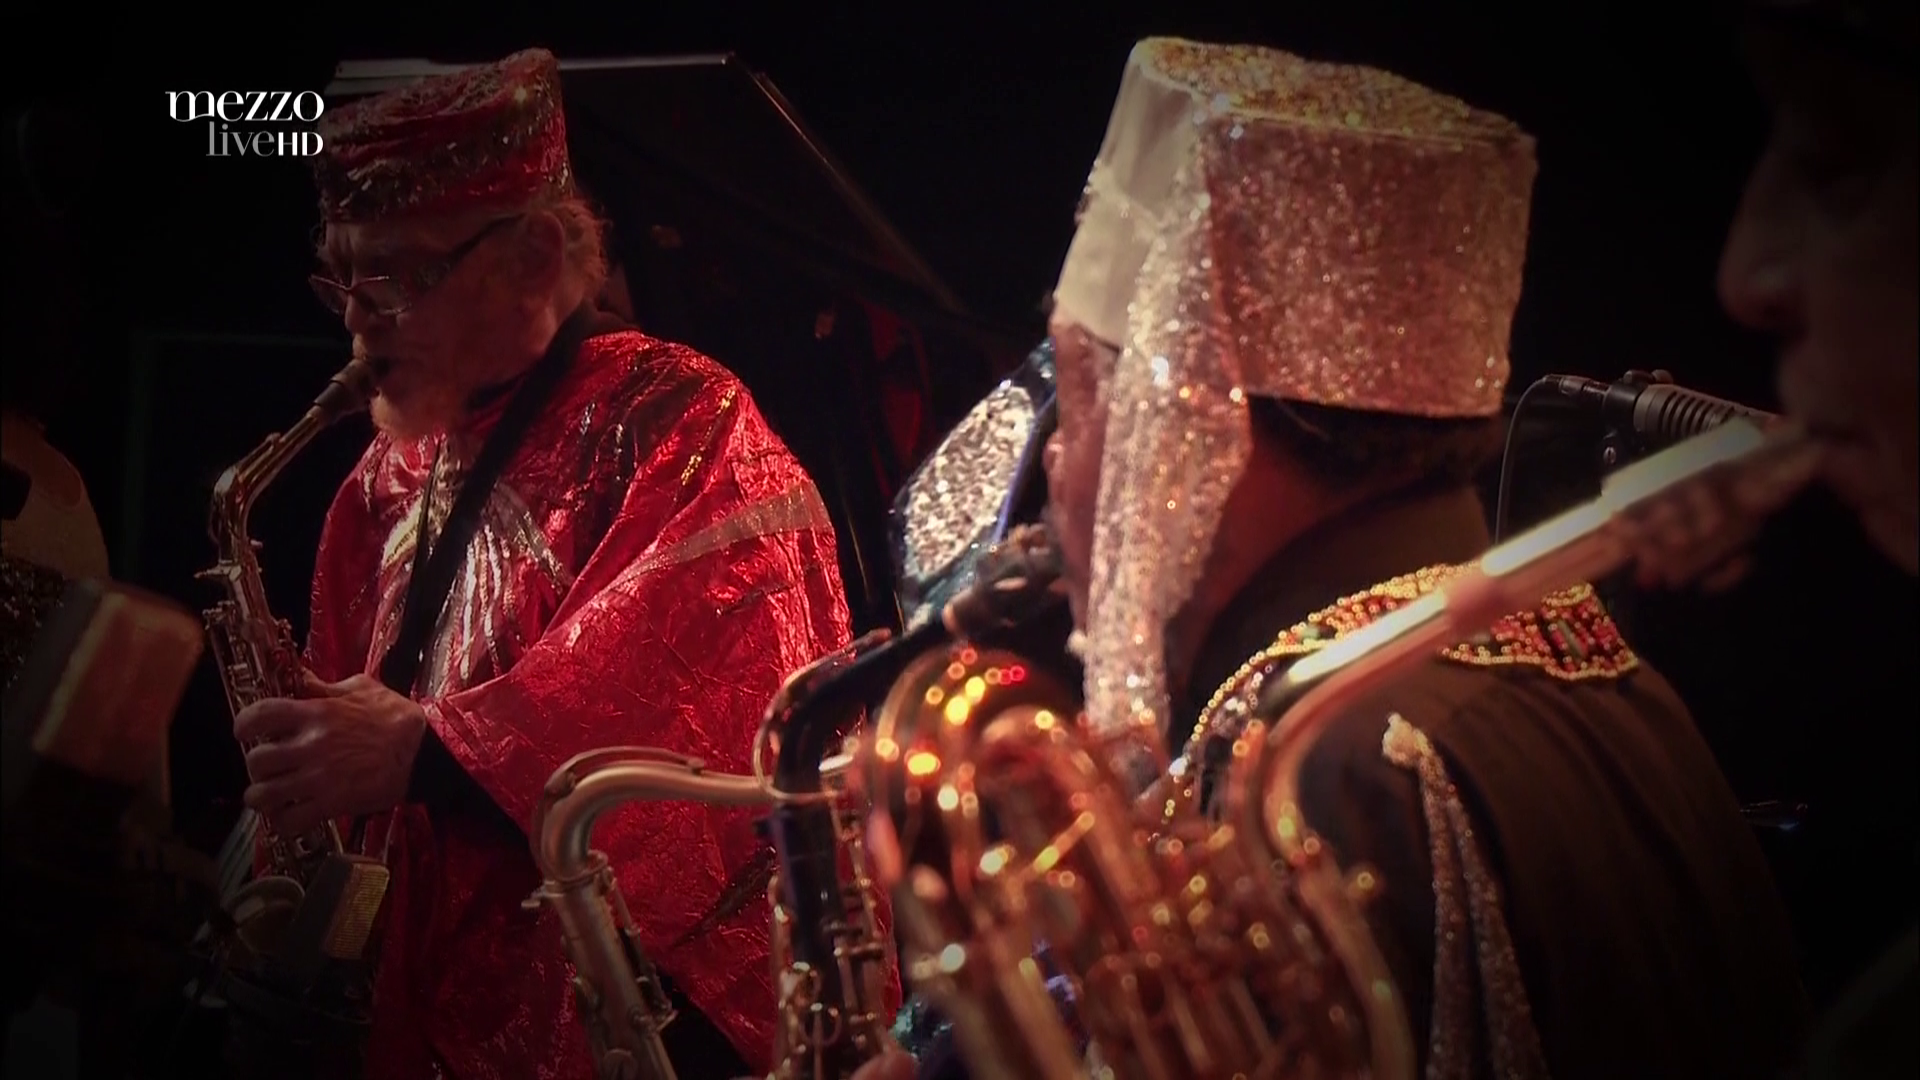 2015 Sun Ra - On Stage With Ra At Banlieues Bleues [HDTV 1080i] 5